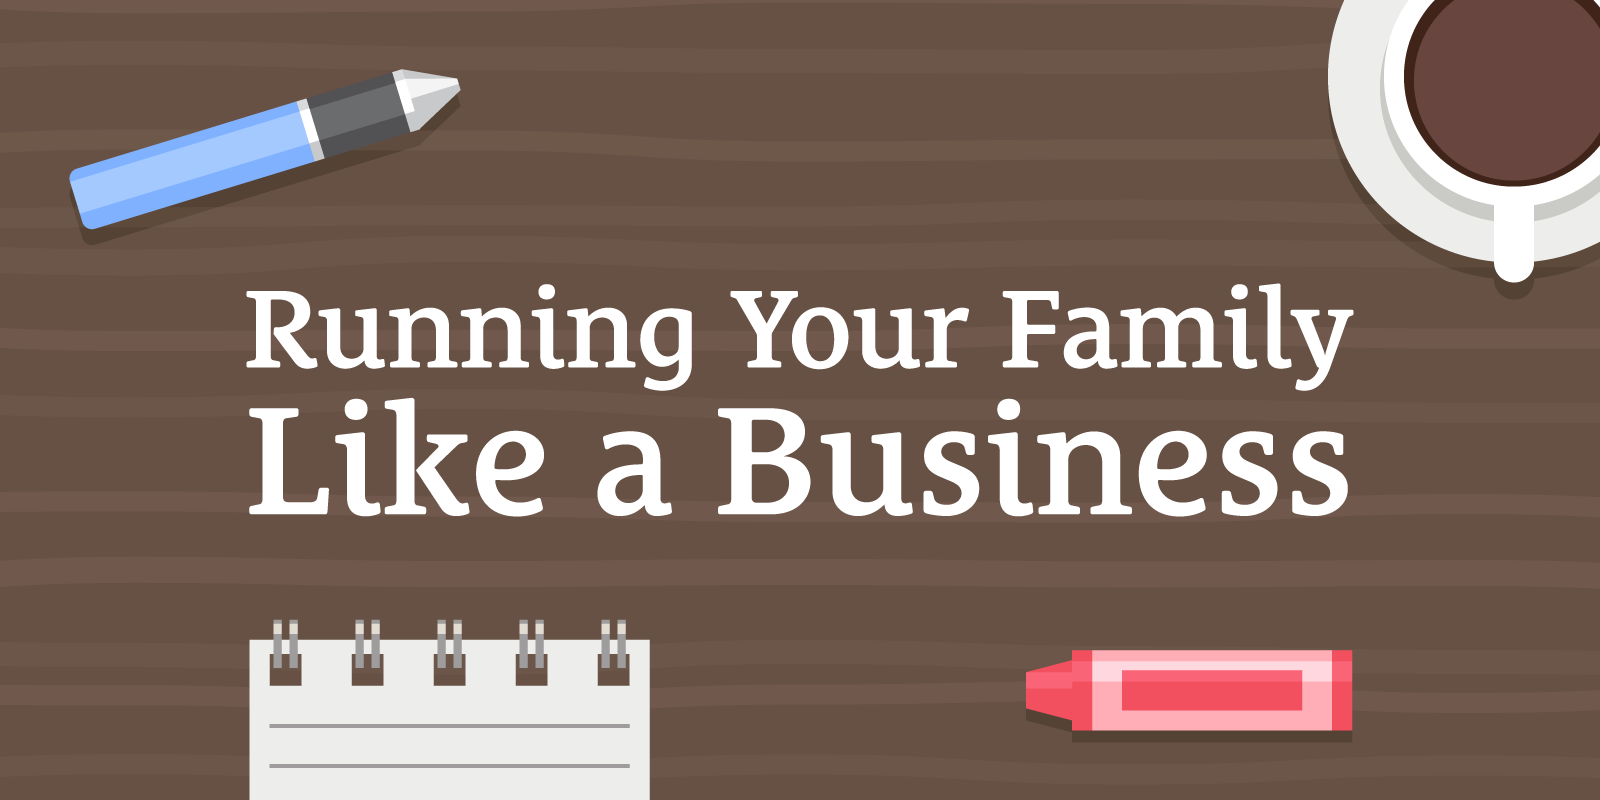 042: Running Your Family Like a Business and Getting on Top of Life